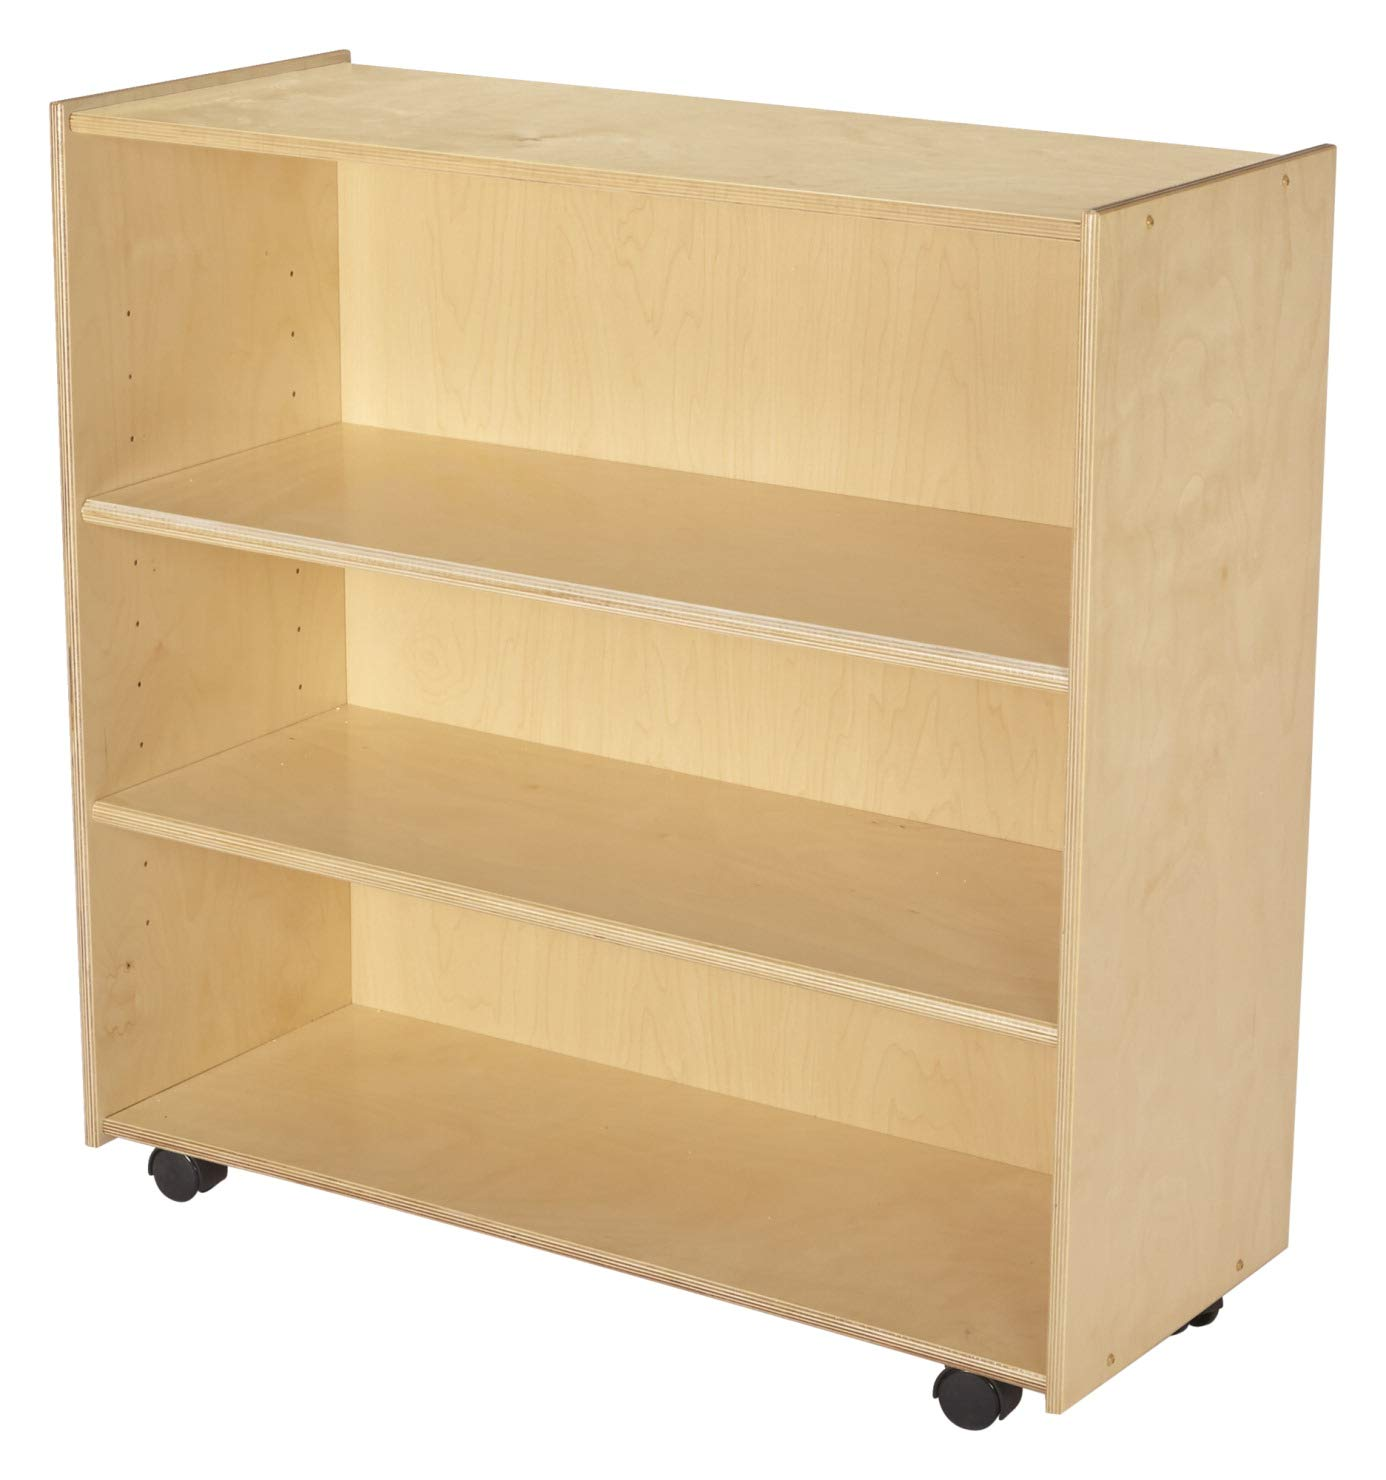 Childcraft Mobile Open Adjustable Shelving Unit with Locking Casters, 3 Shelves